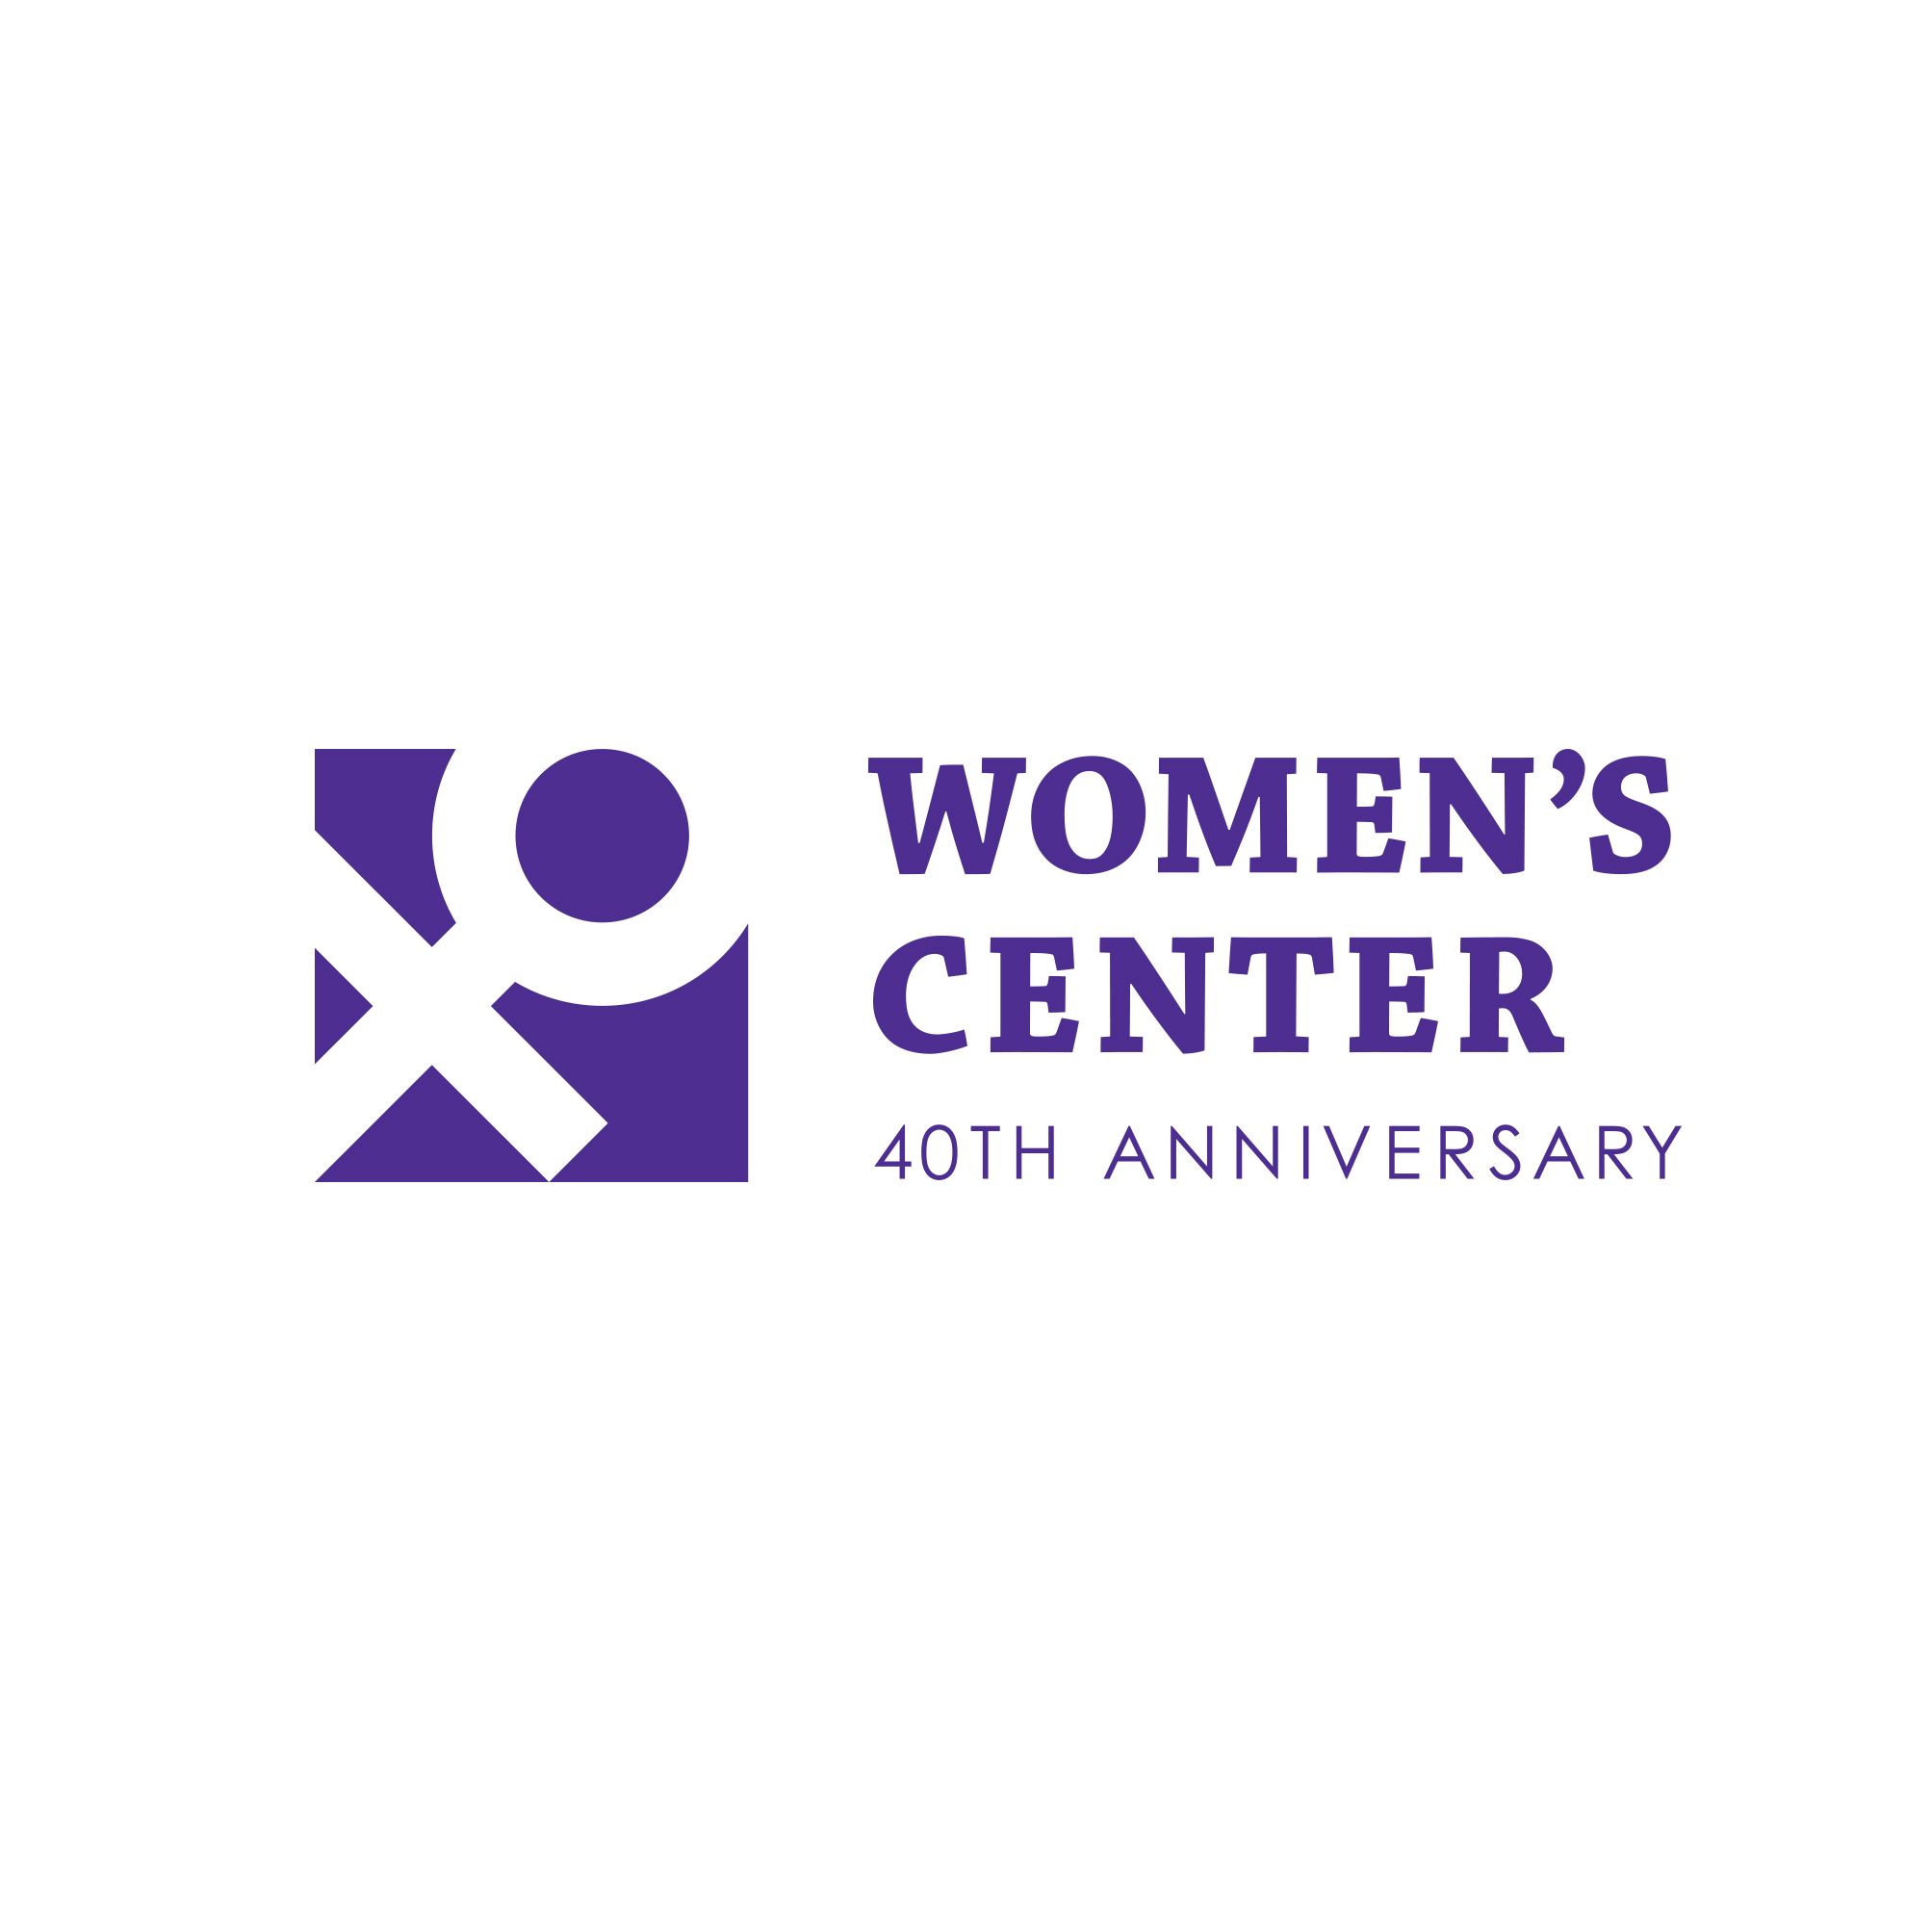 Women's Center 40th Anniversary